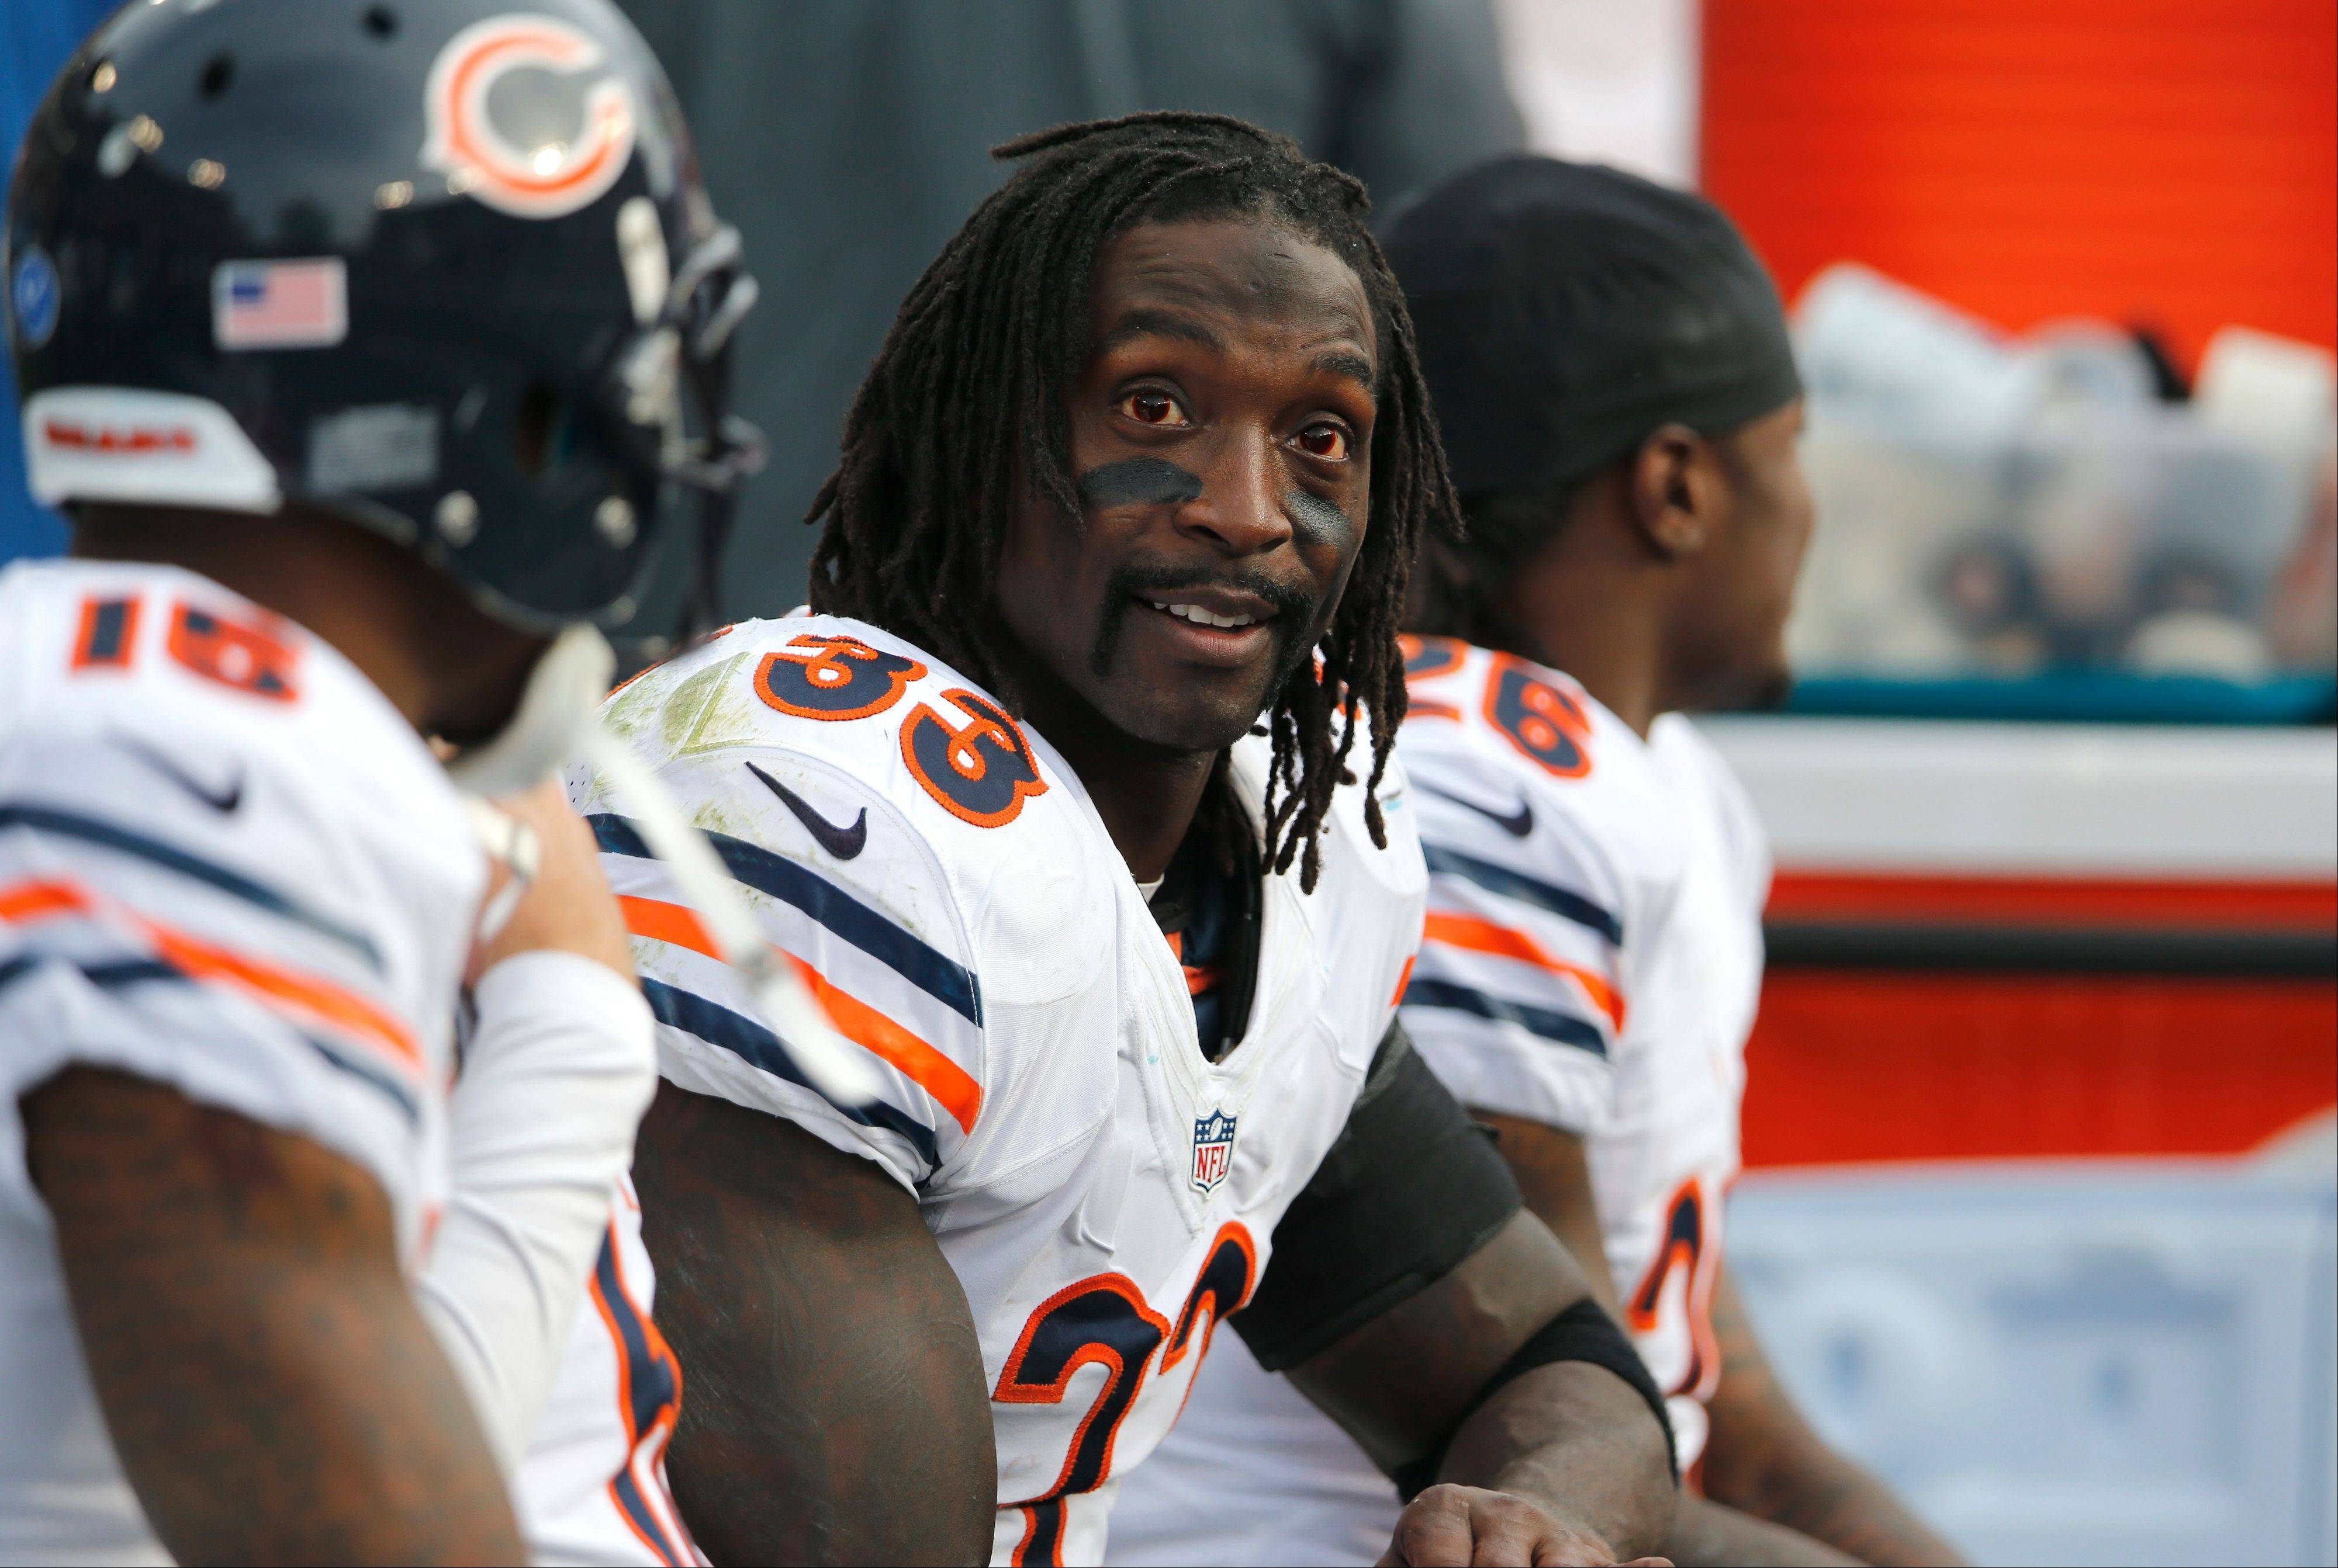 Bears cornerback Charles Tillman was the star of the show in the team's 7-1 first half.